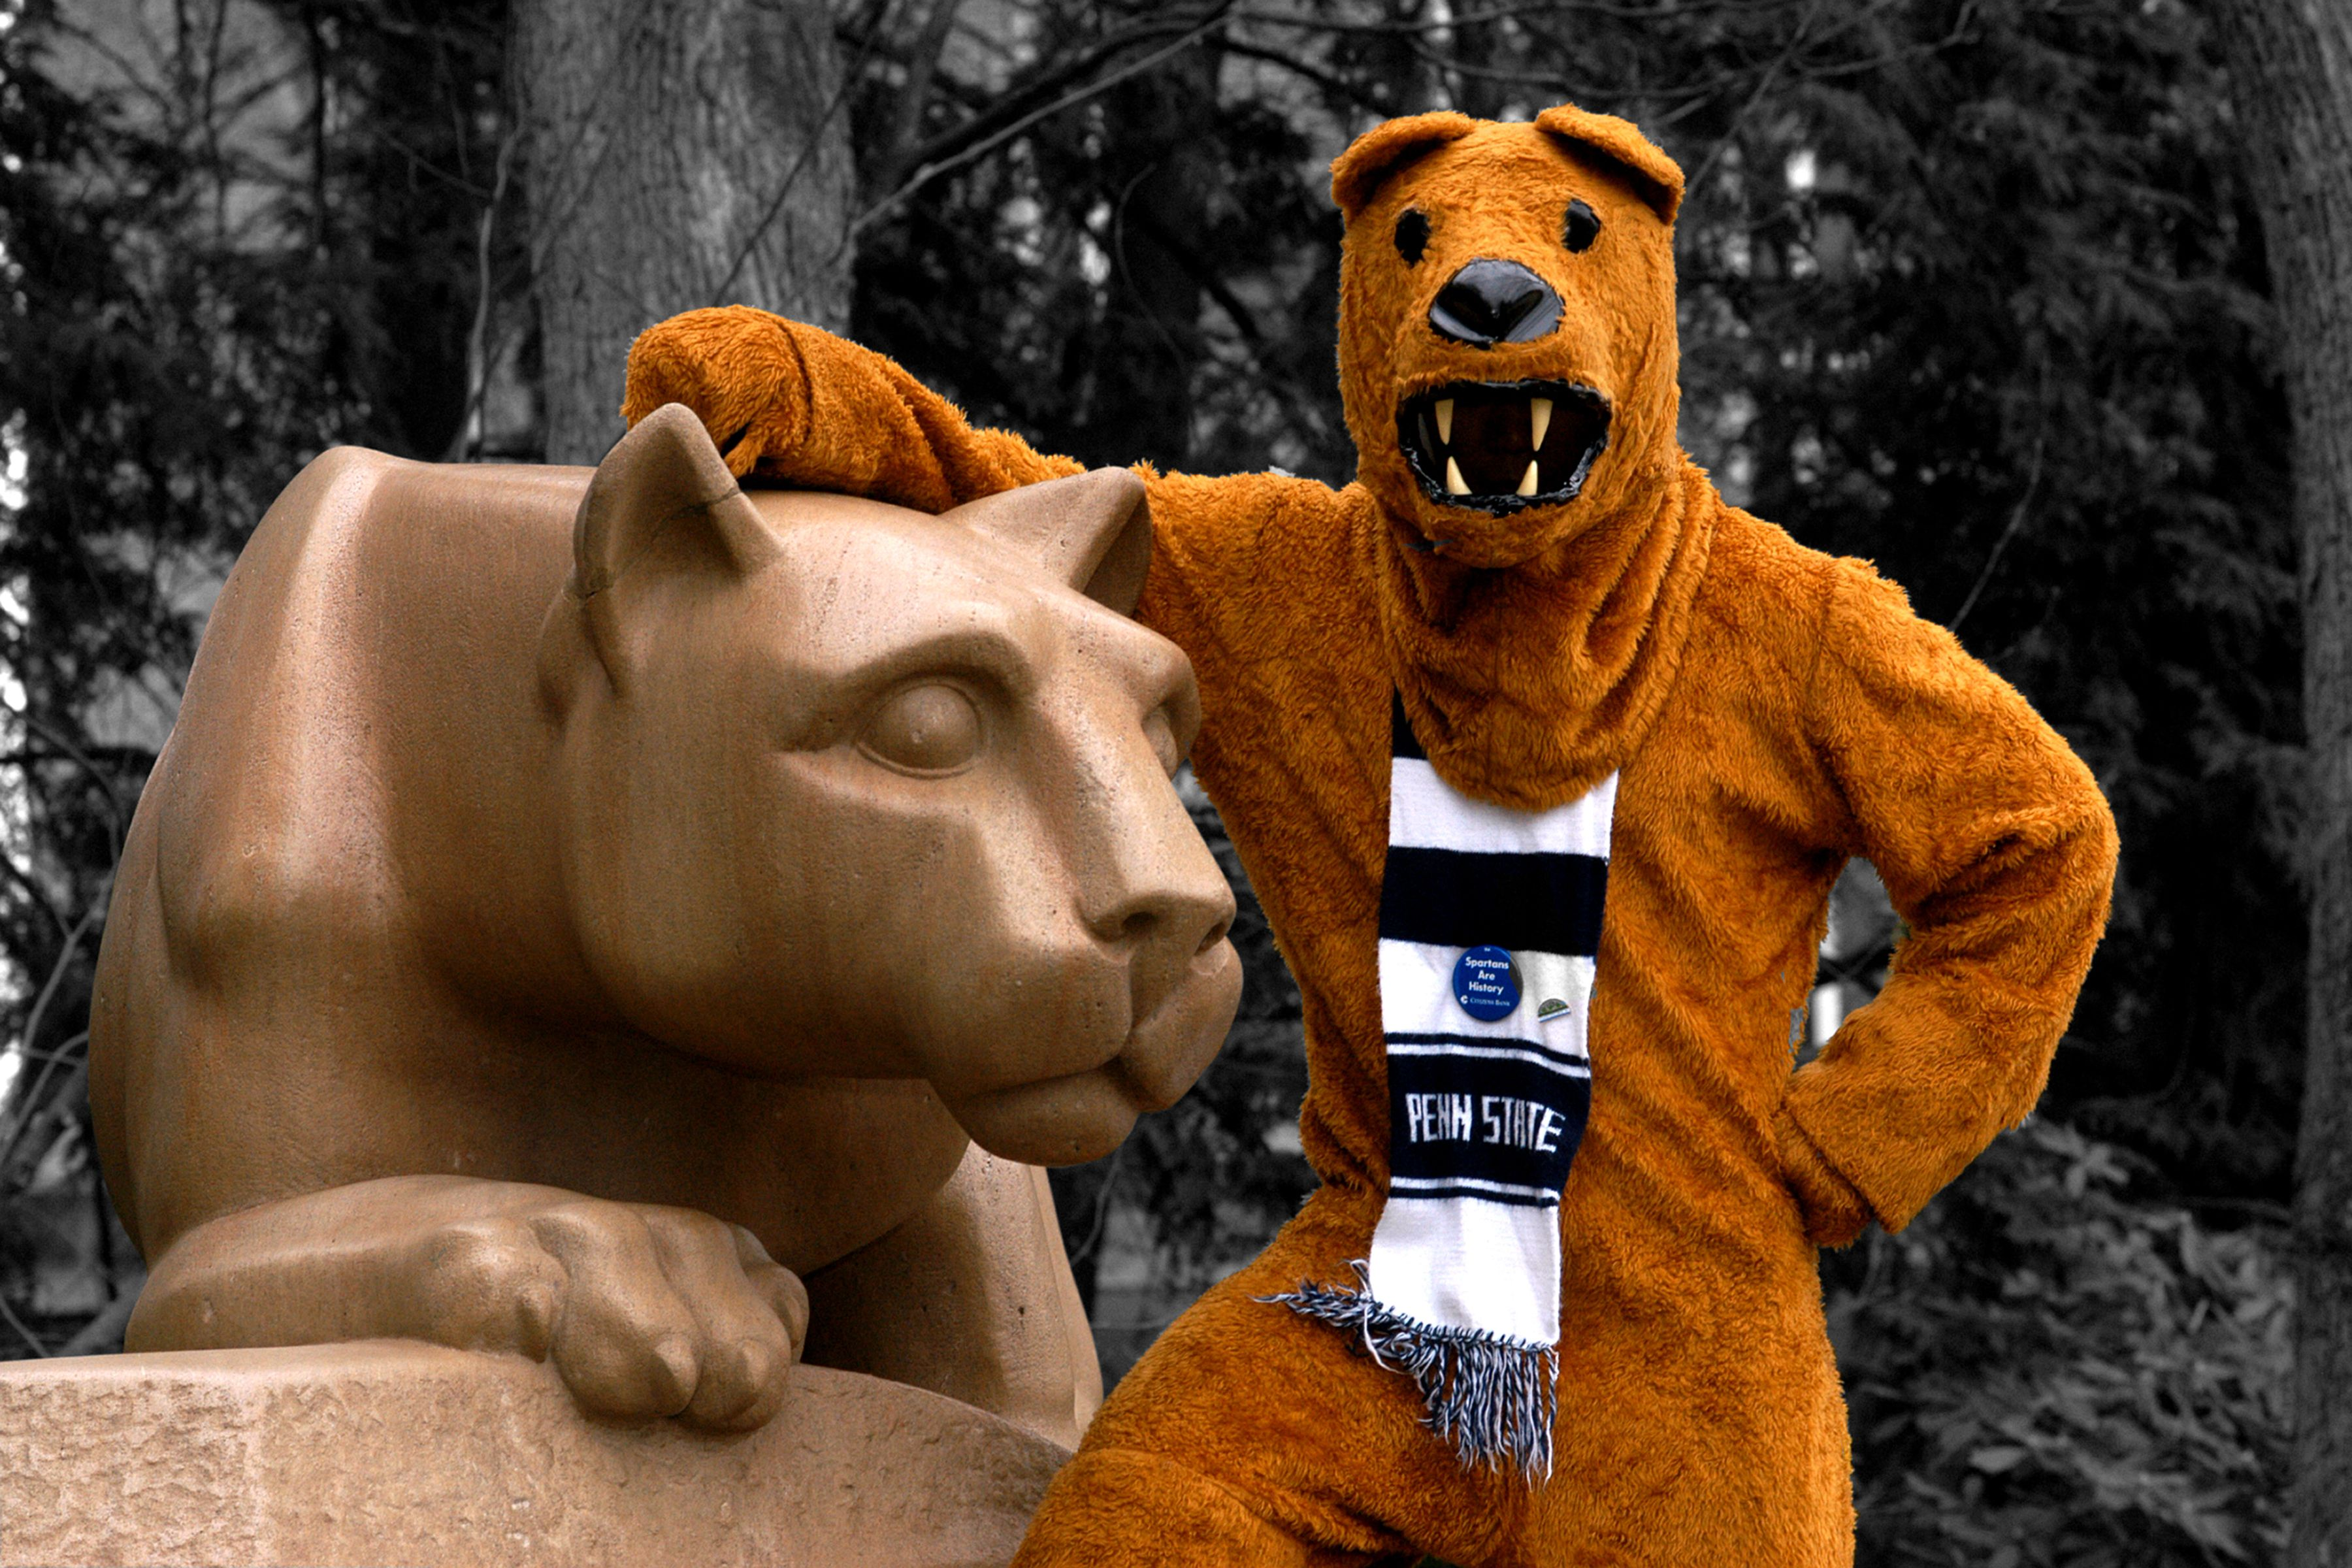 Nittany Lion With The Nittany Lion Awesome Penn State Nittany Lions Penn State Penn State University